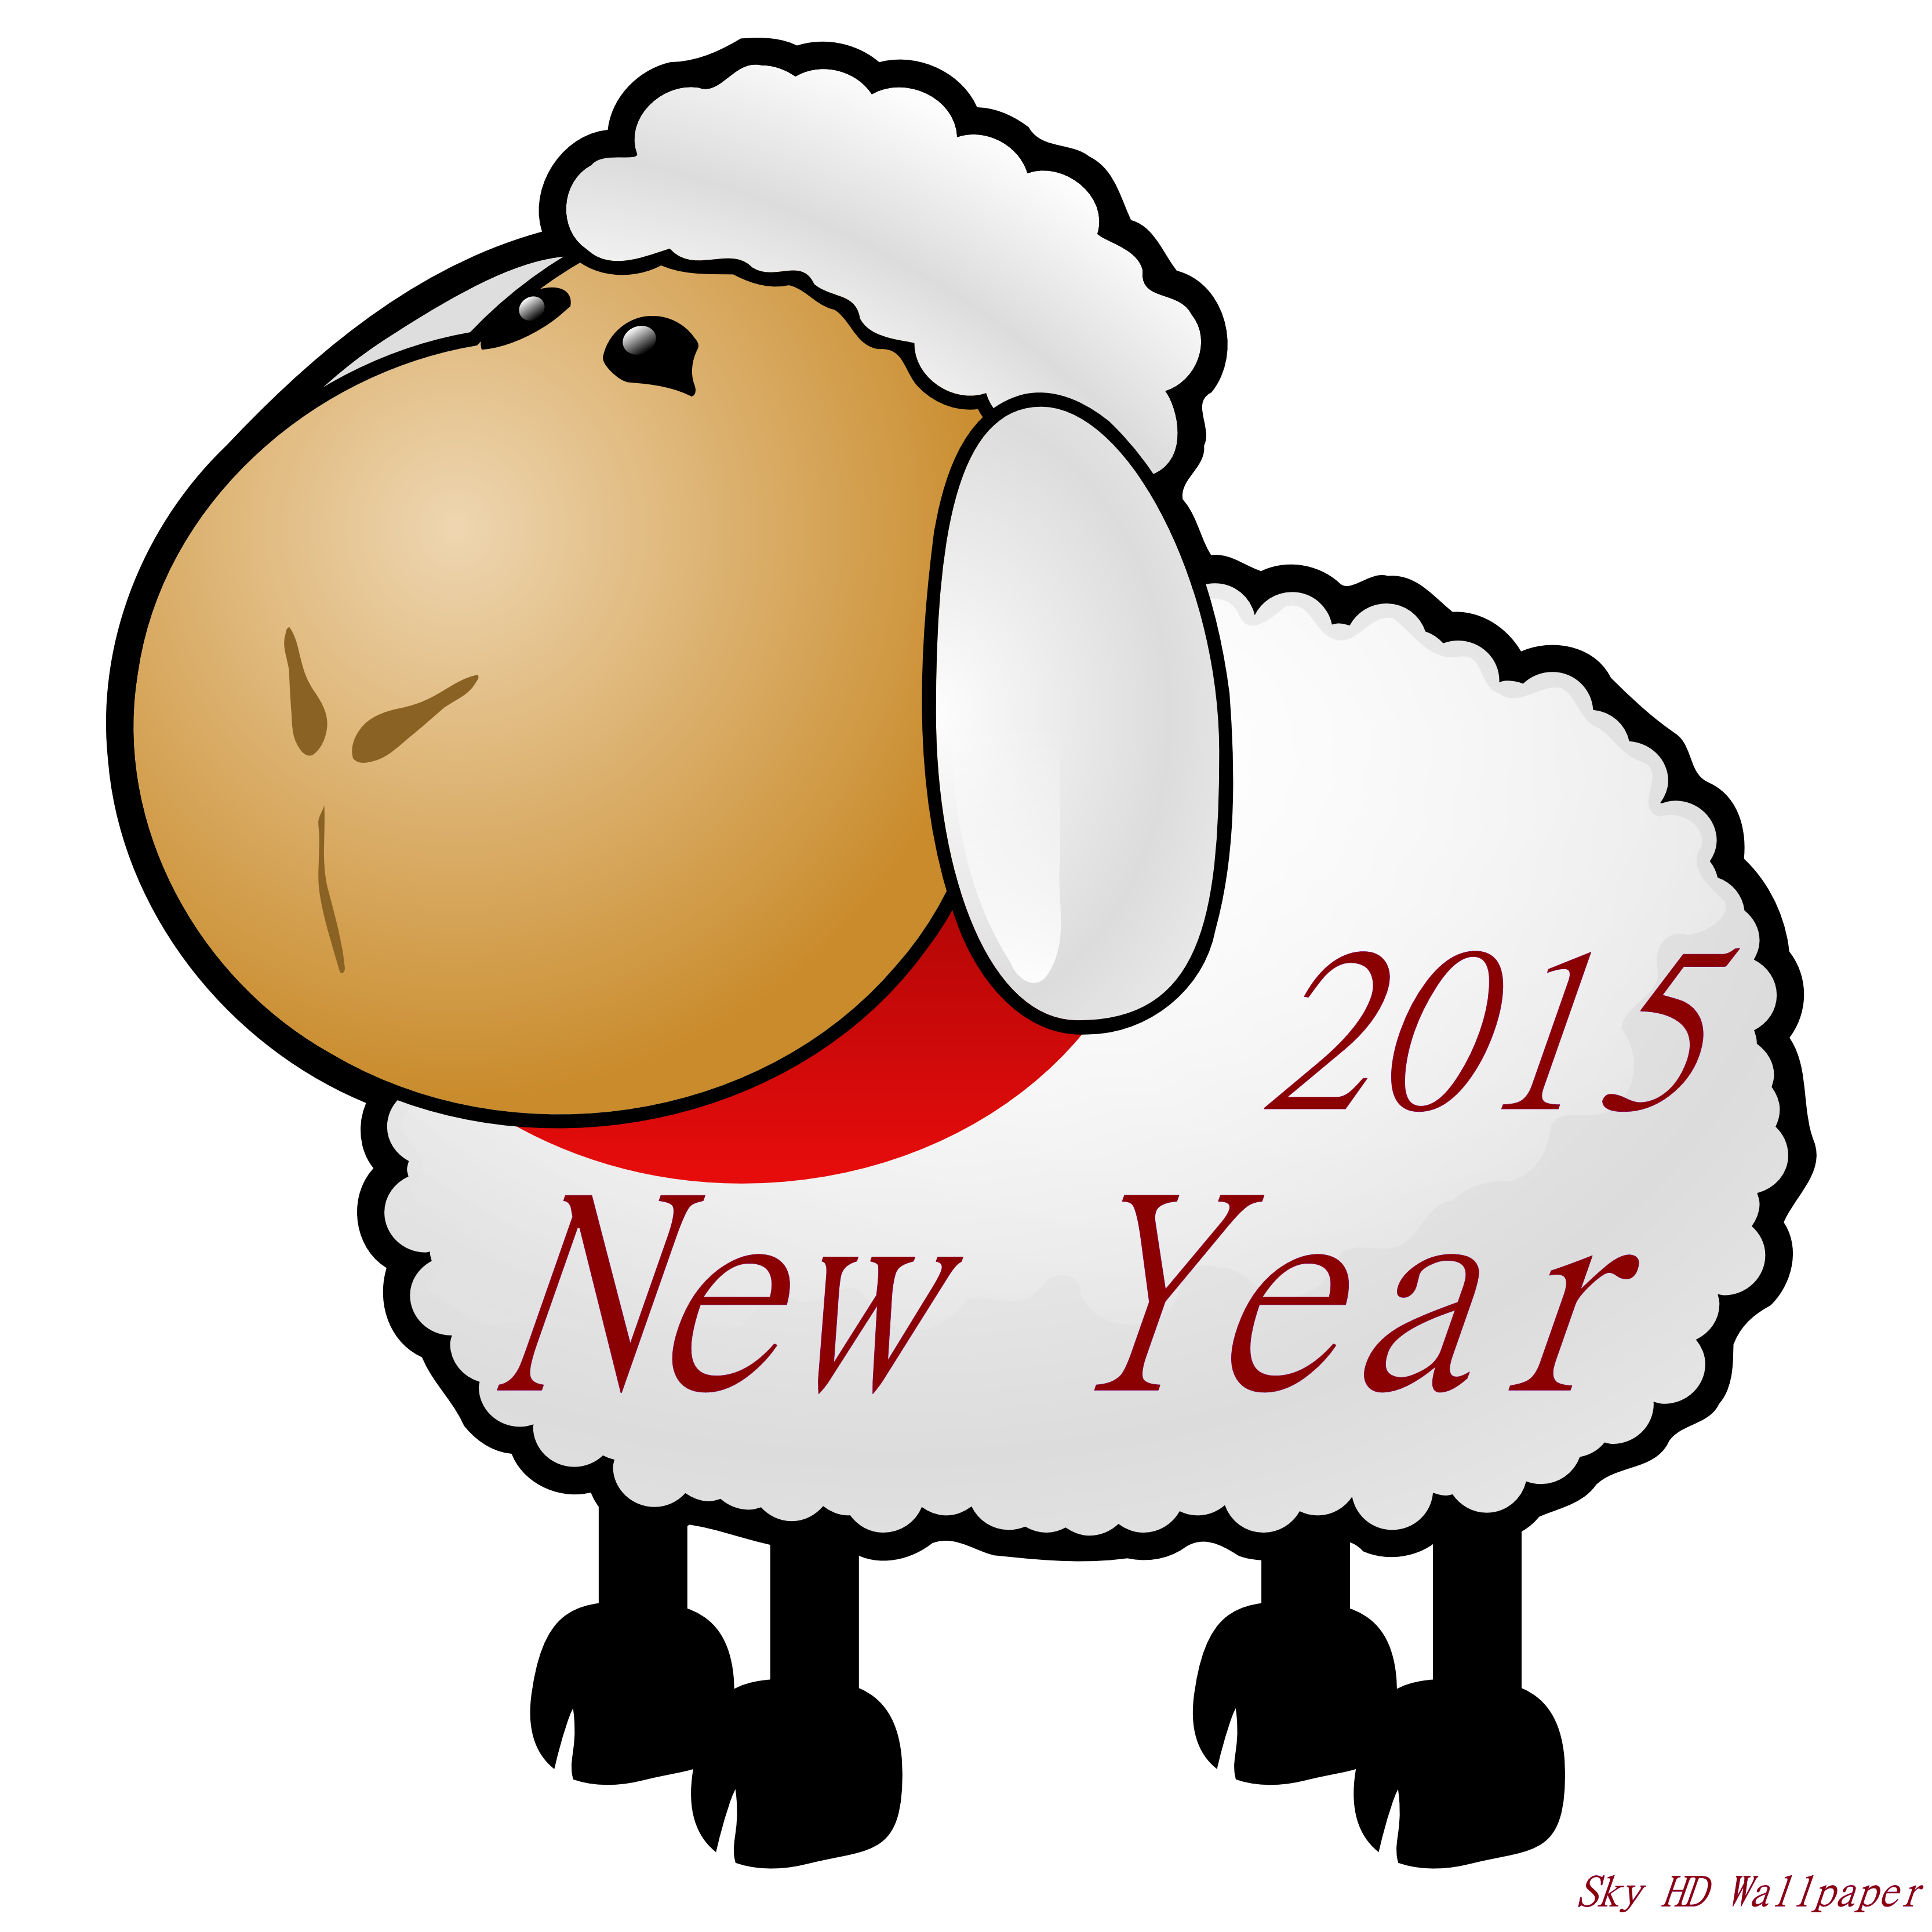 chinese new year 2015 clipart - Chinese Lunar New Year 2015